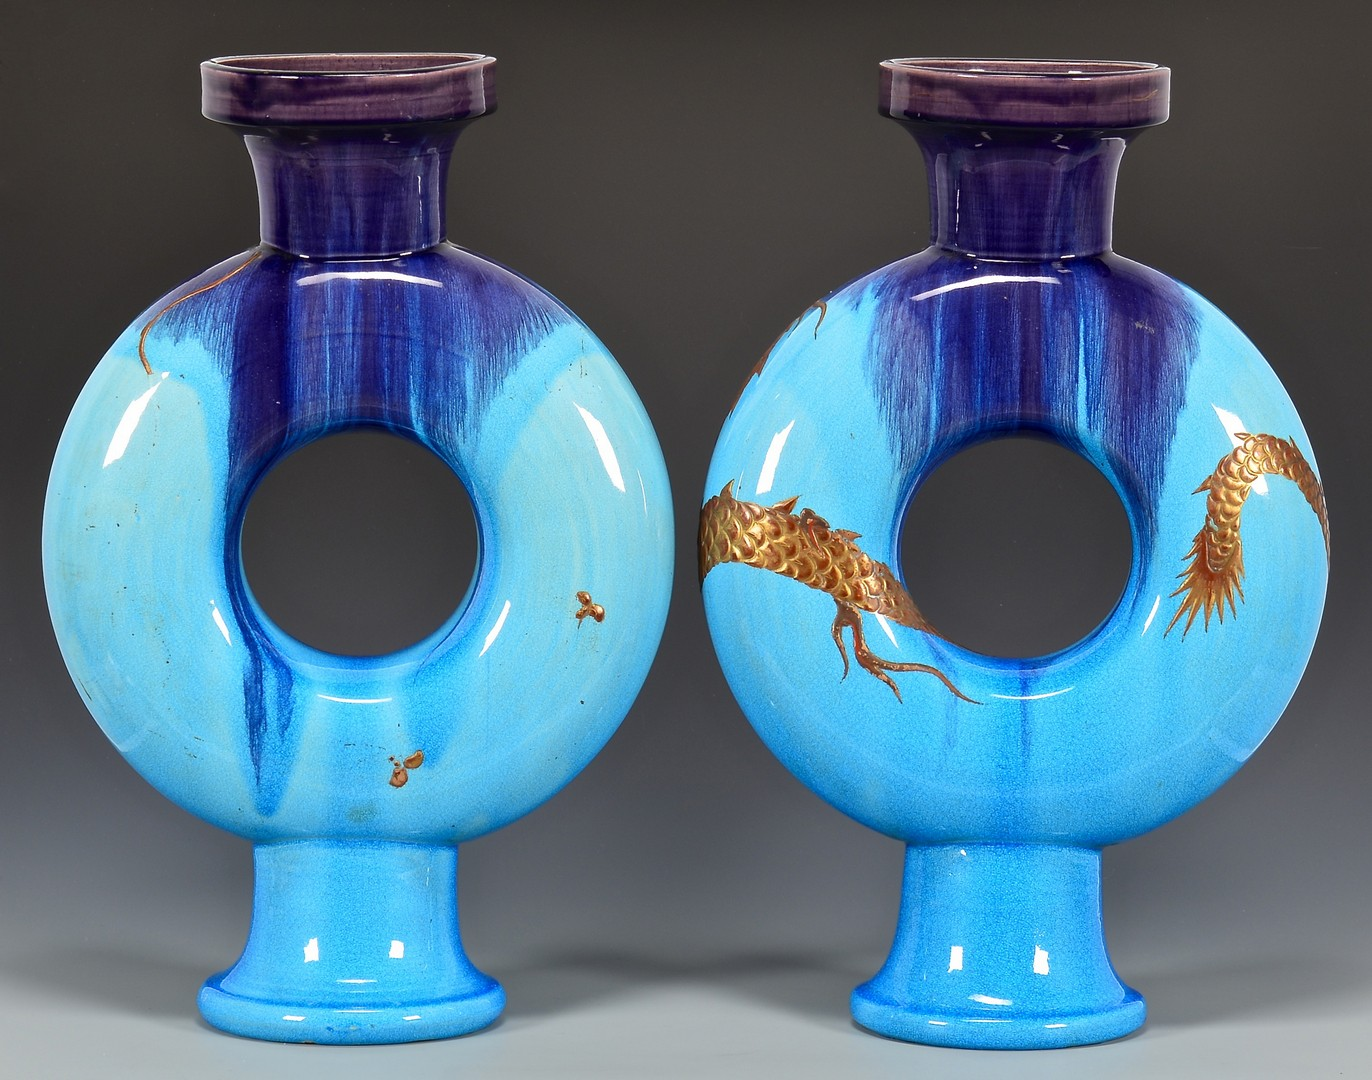 Lot 4010152: Pr. French Glazed Ceramic Flasks